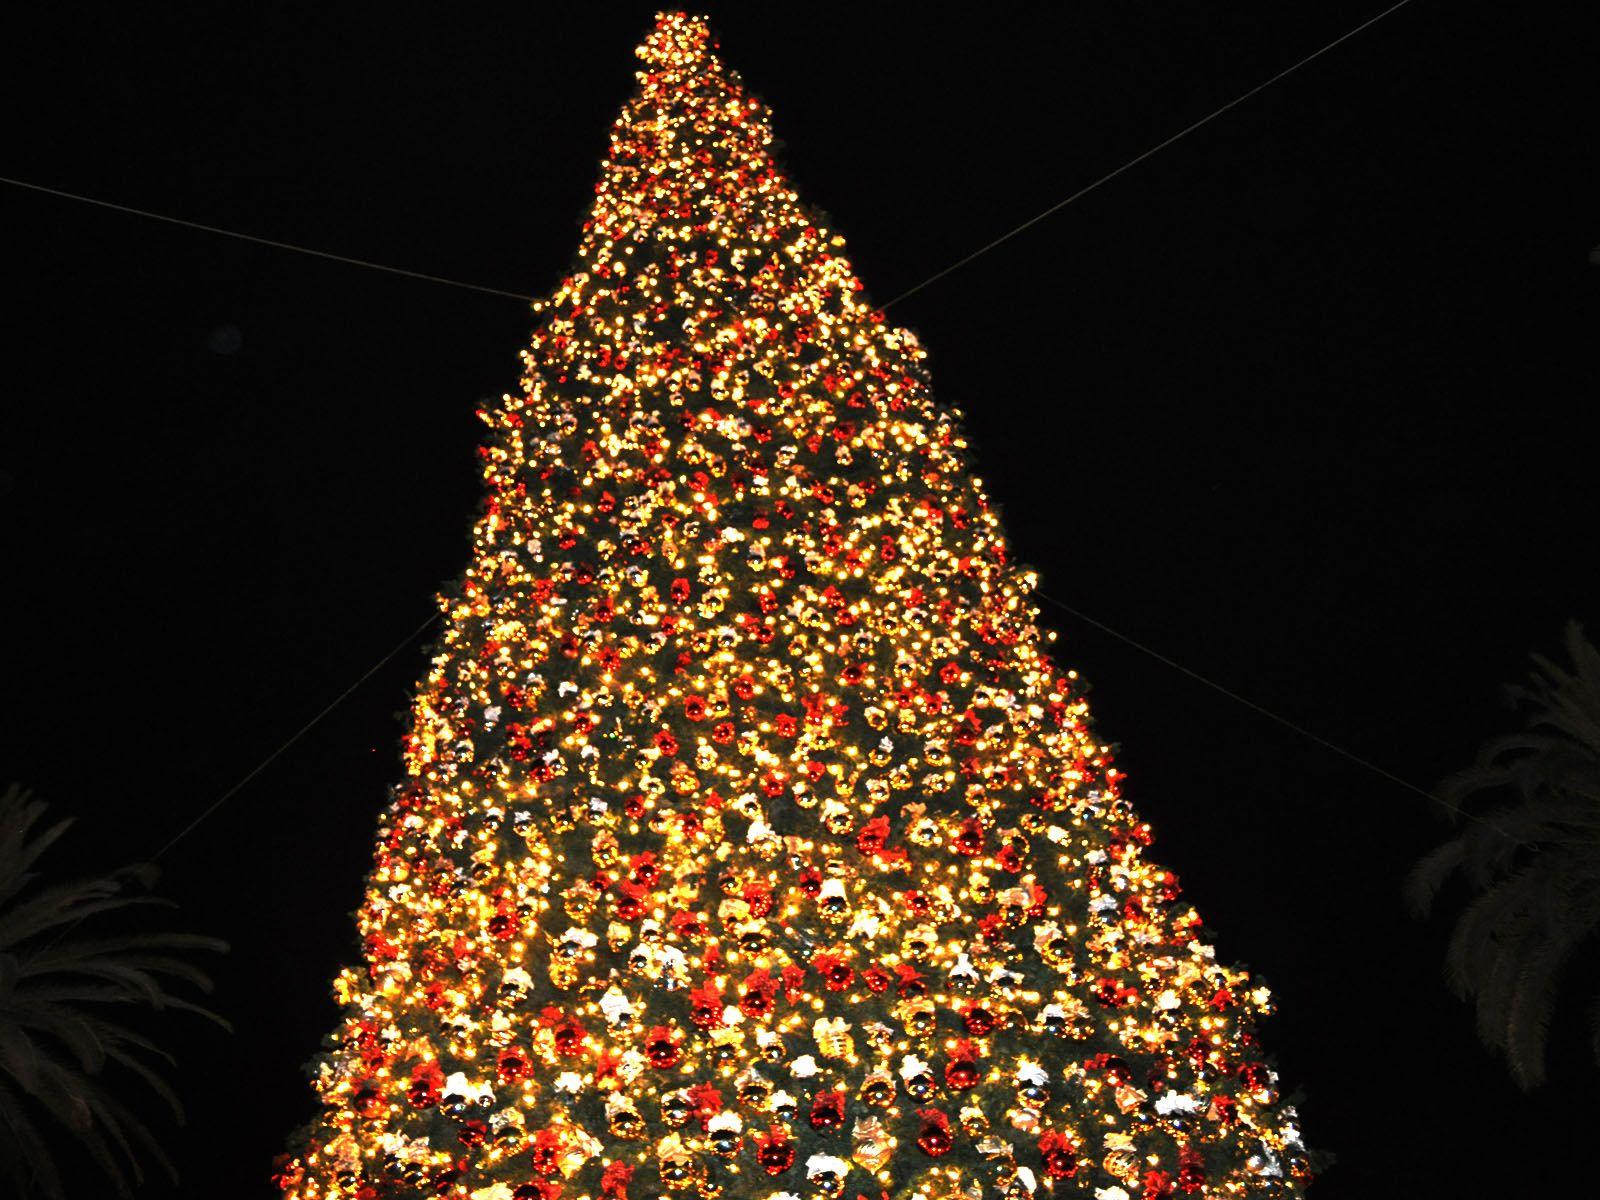 http://images.latinpost.com/data/images/full/4334/christmas-tree.jpg